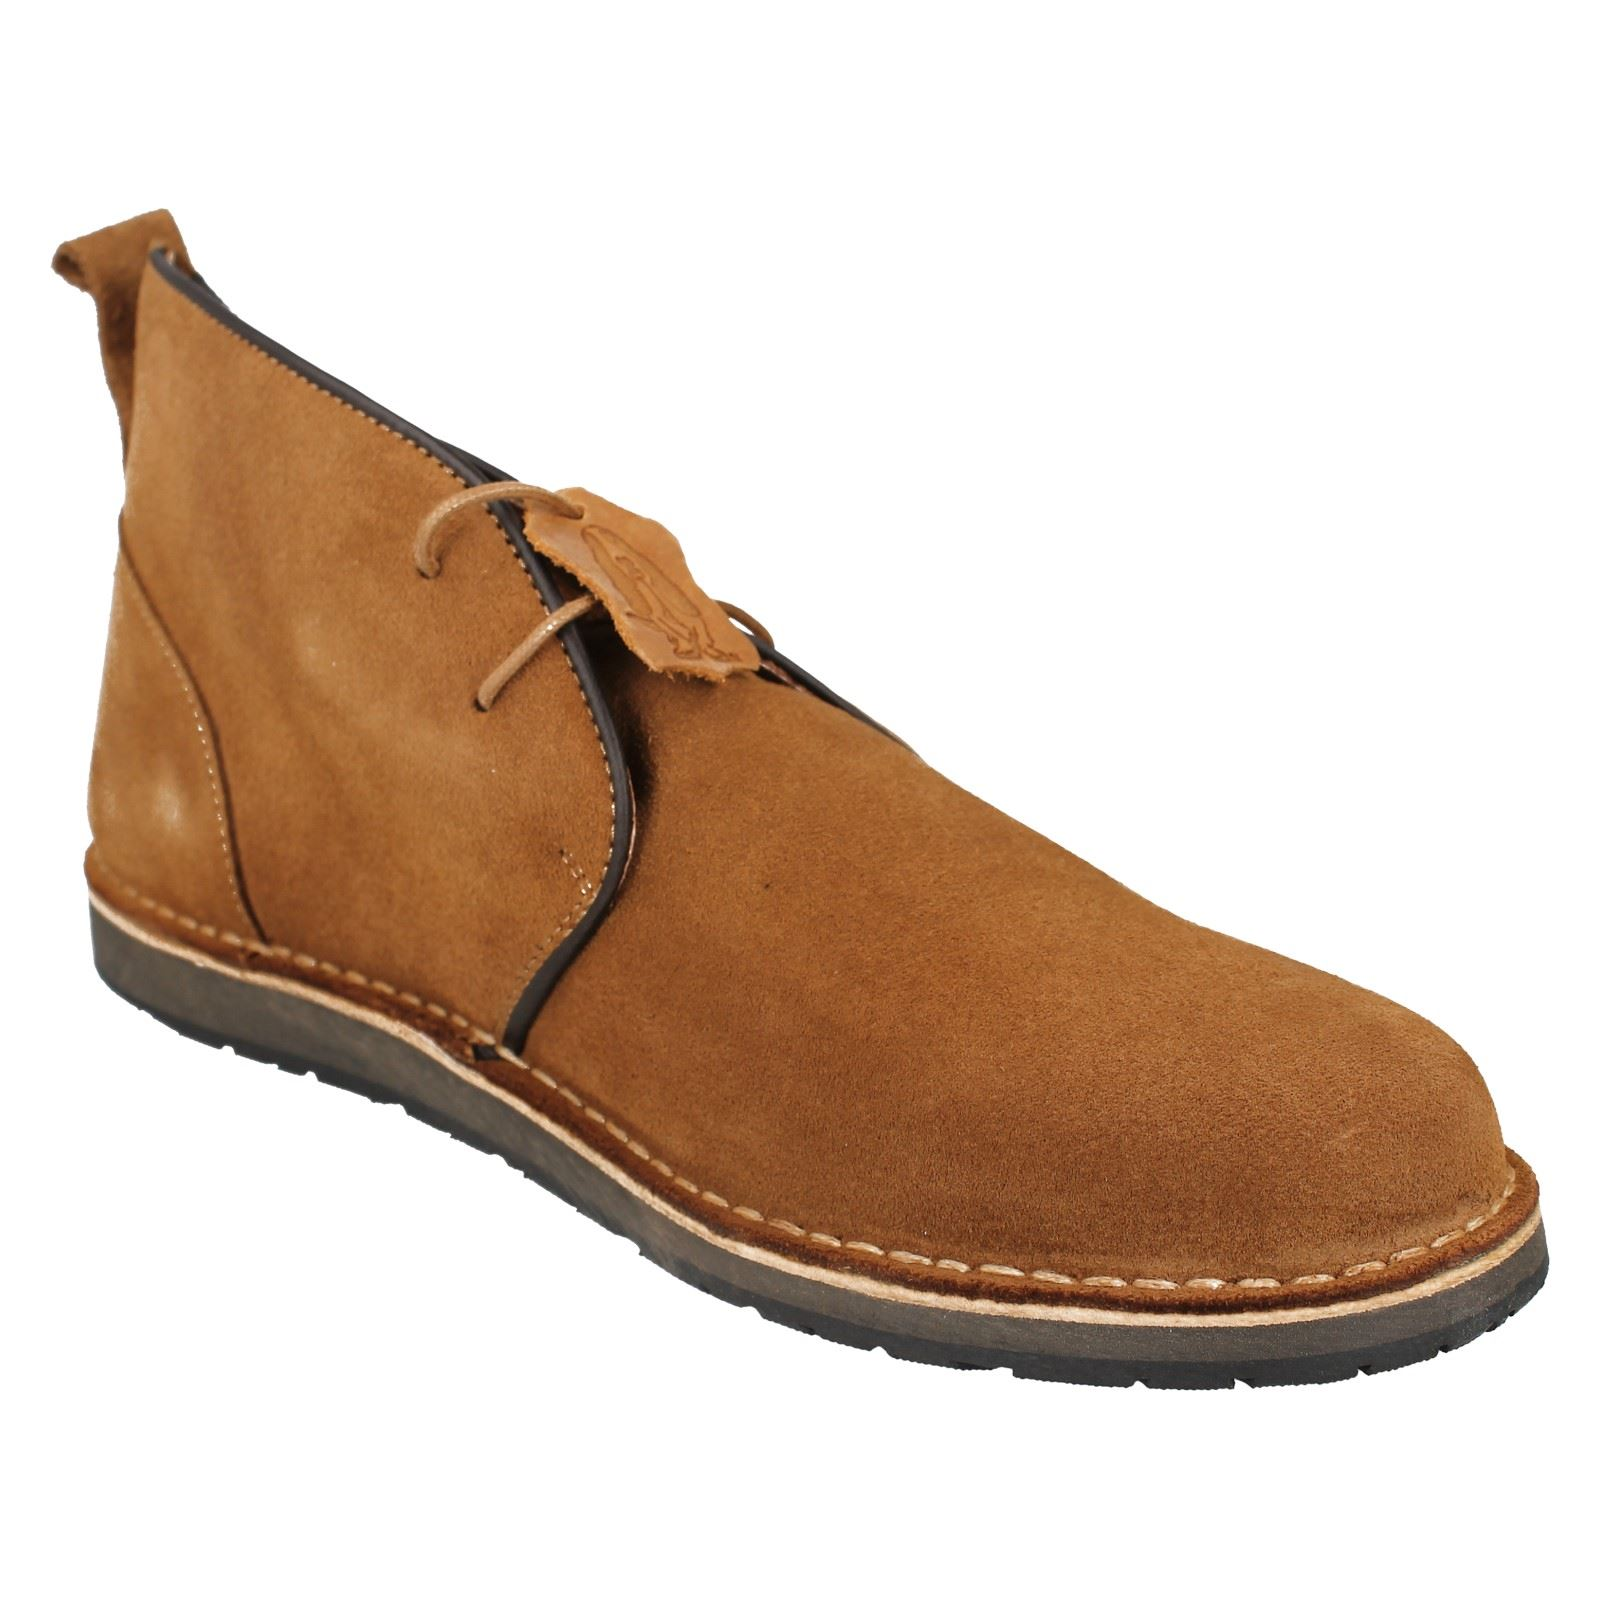 Uomo Ankle Hush Puppies Casual Smart Ankle Uomo Stiefel Label Barricane Heritage efda67